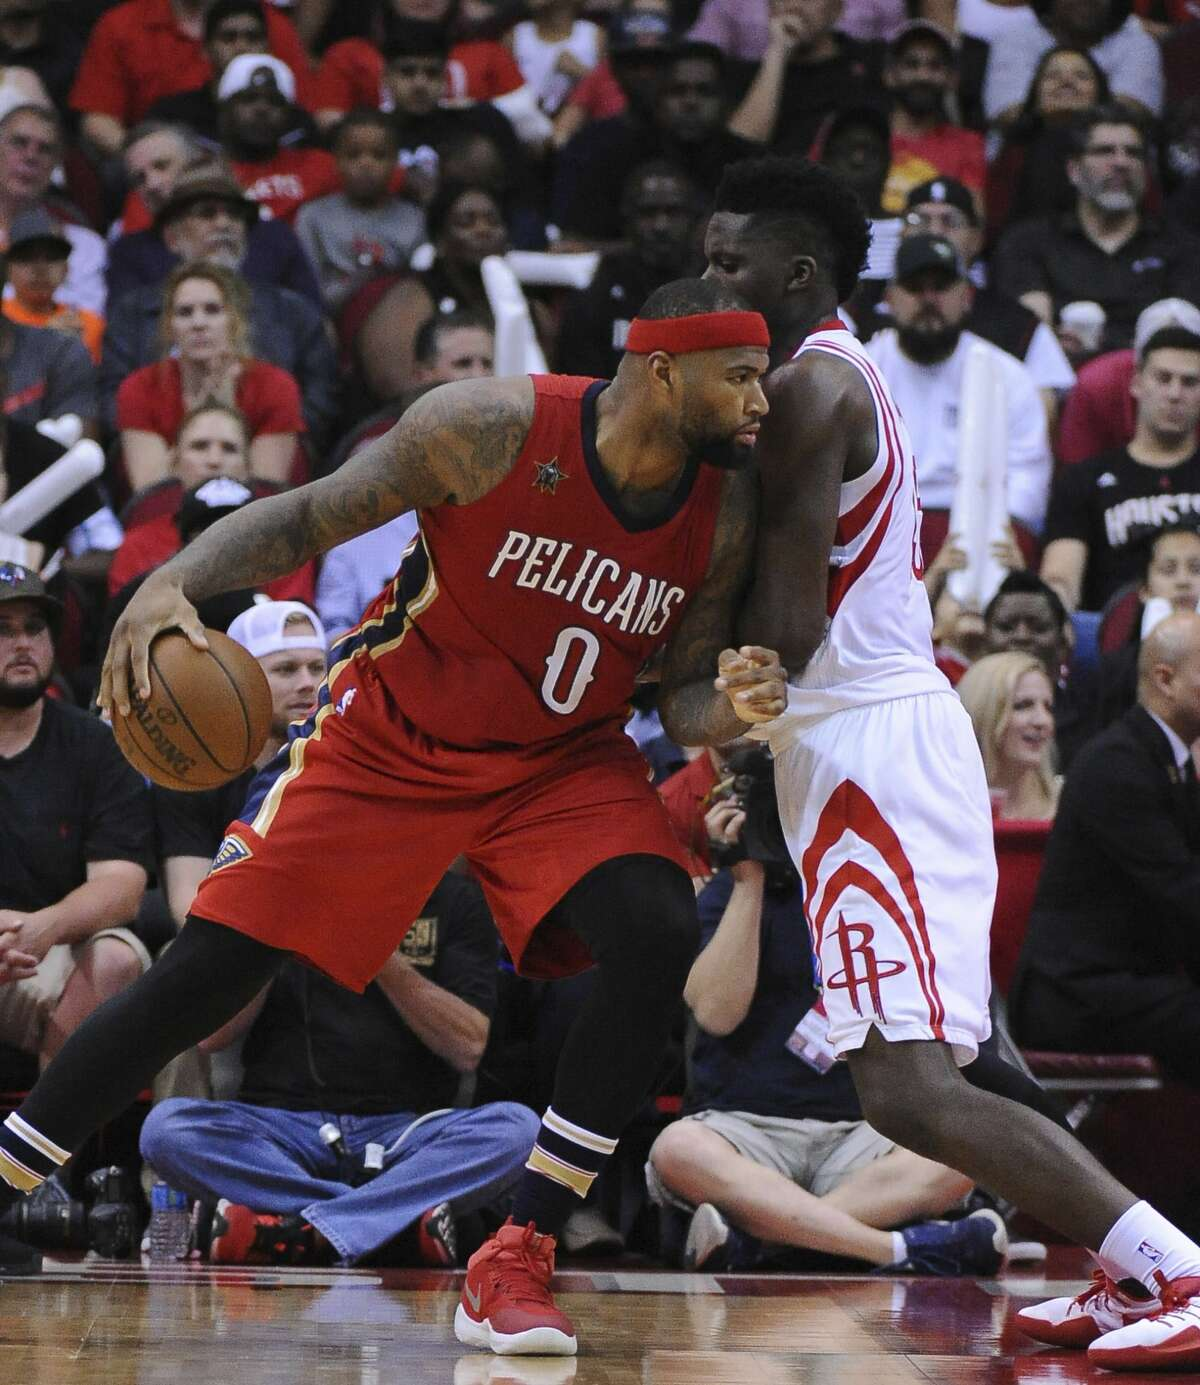 New Orleans Pelicans forward DeMarcus Cousins (0) works against Houston Rockets center Clint Capela, right, in the second half of an NBA basketball game Friday, March 24, 2017, in Houston. (AP Photo/George Bridges)